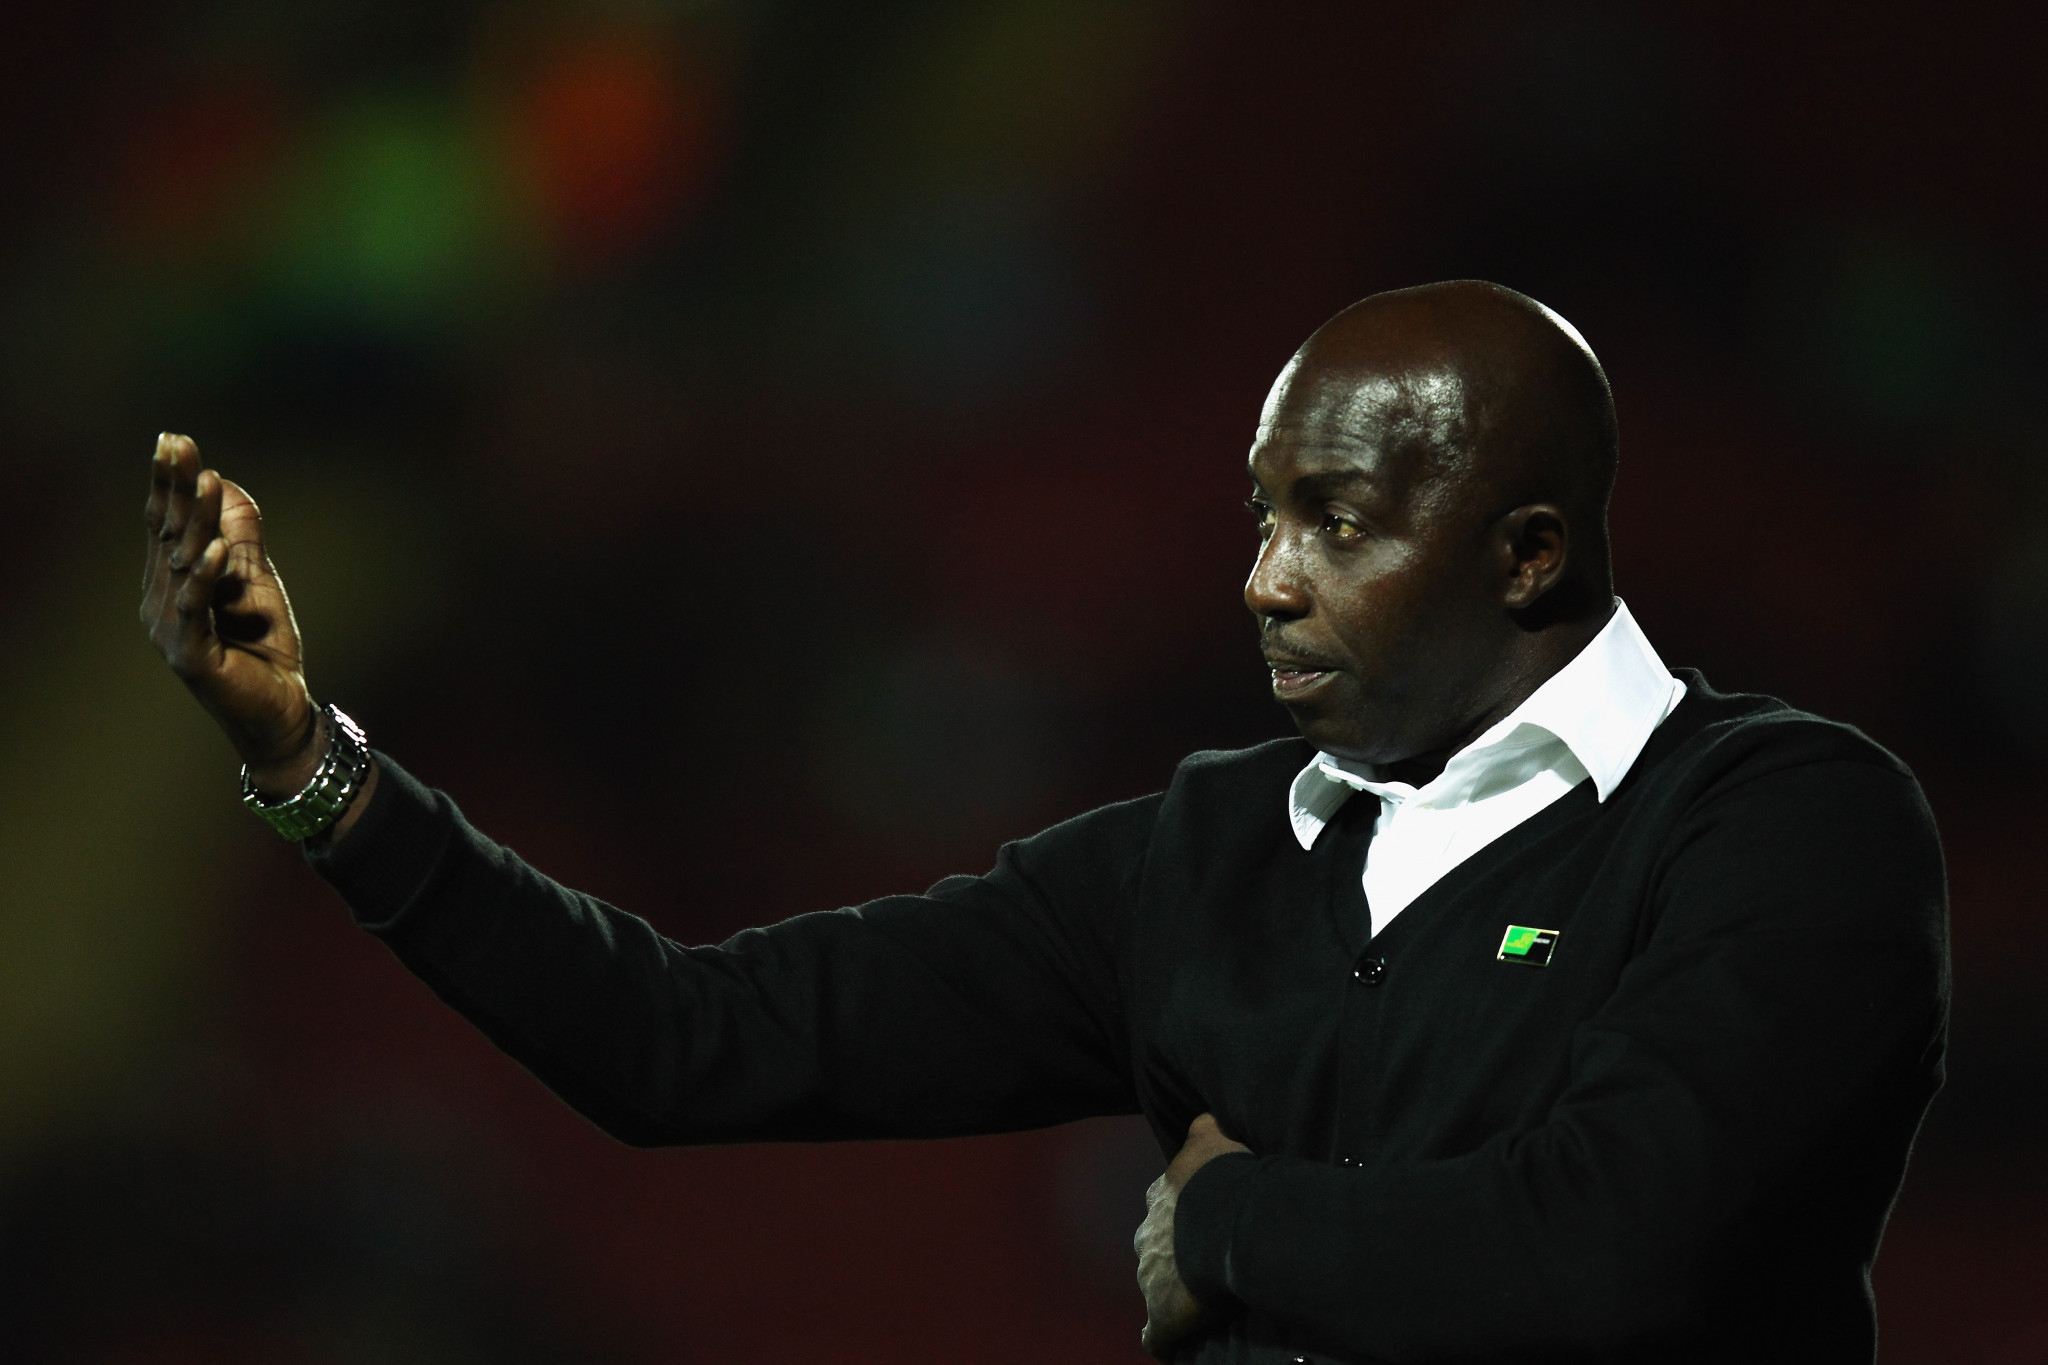 Former Nigeria football coach has life ban for match fixing cut to five years